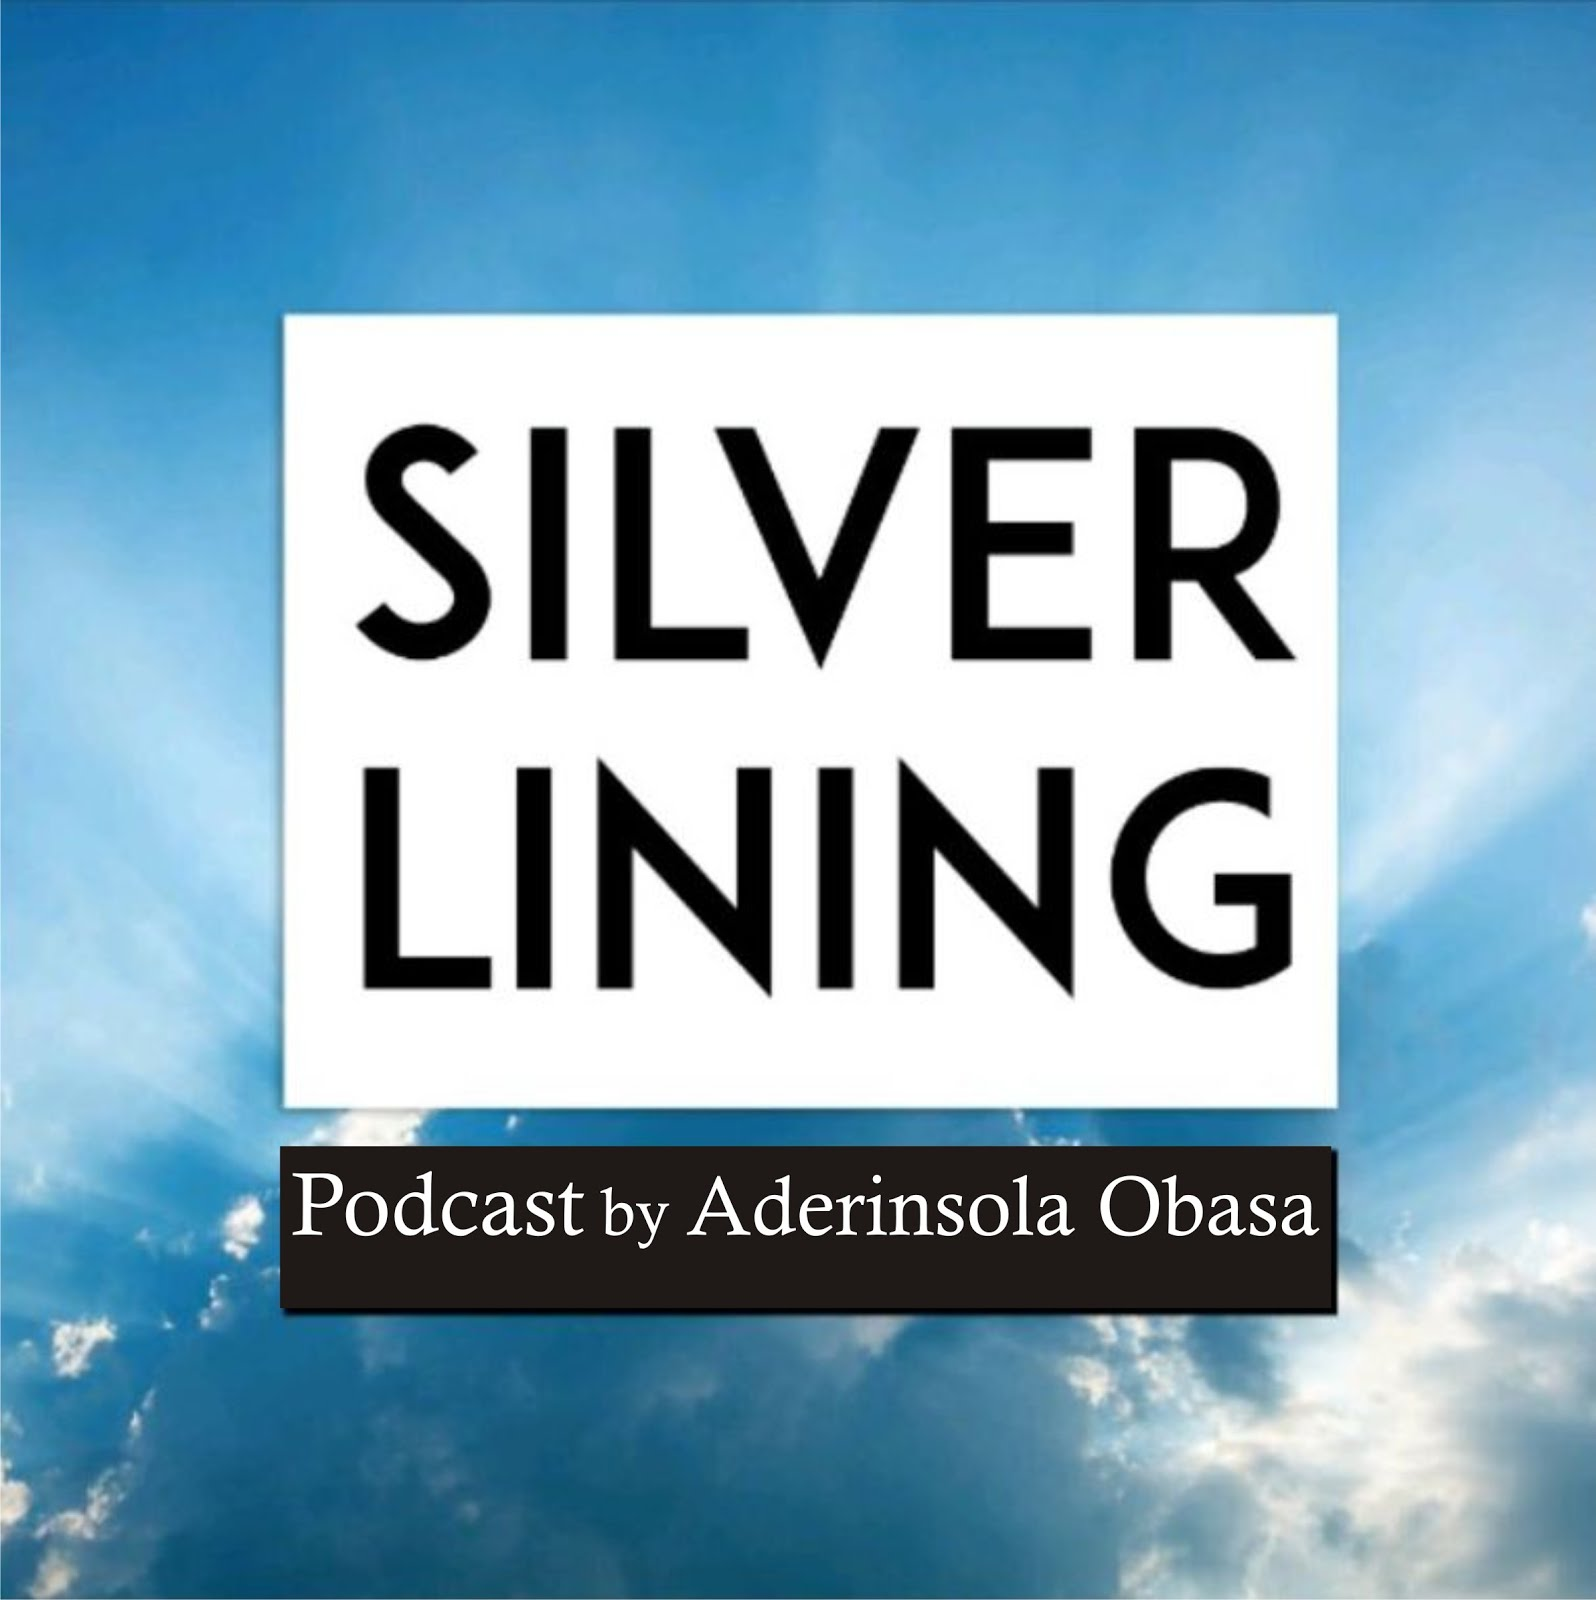 Silver Lining Podcast